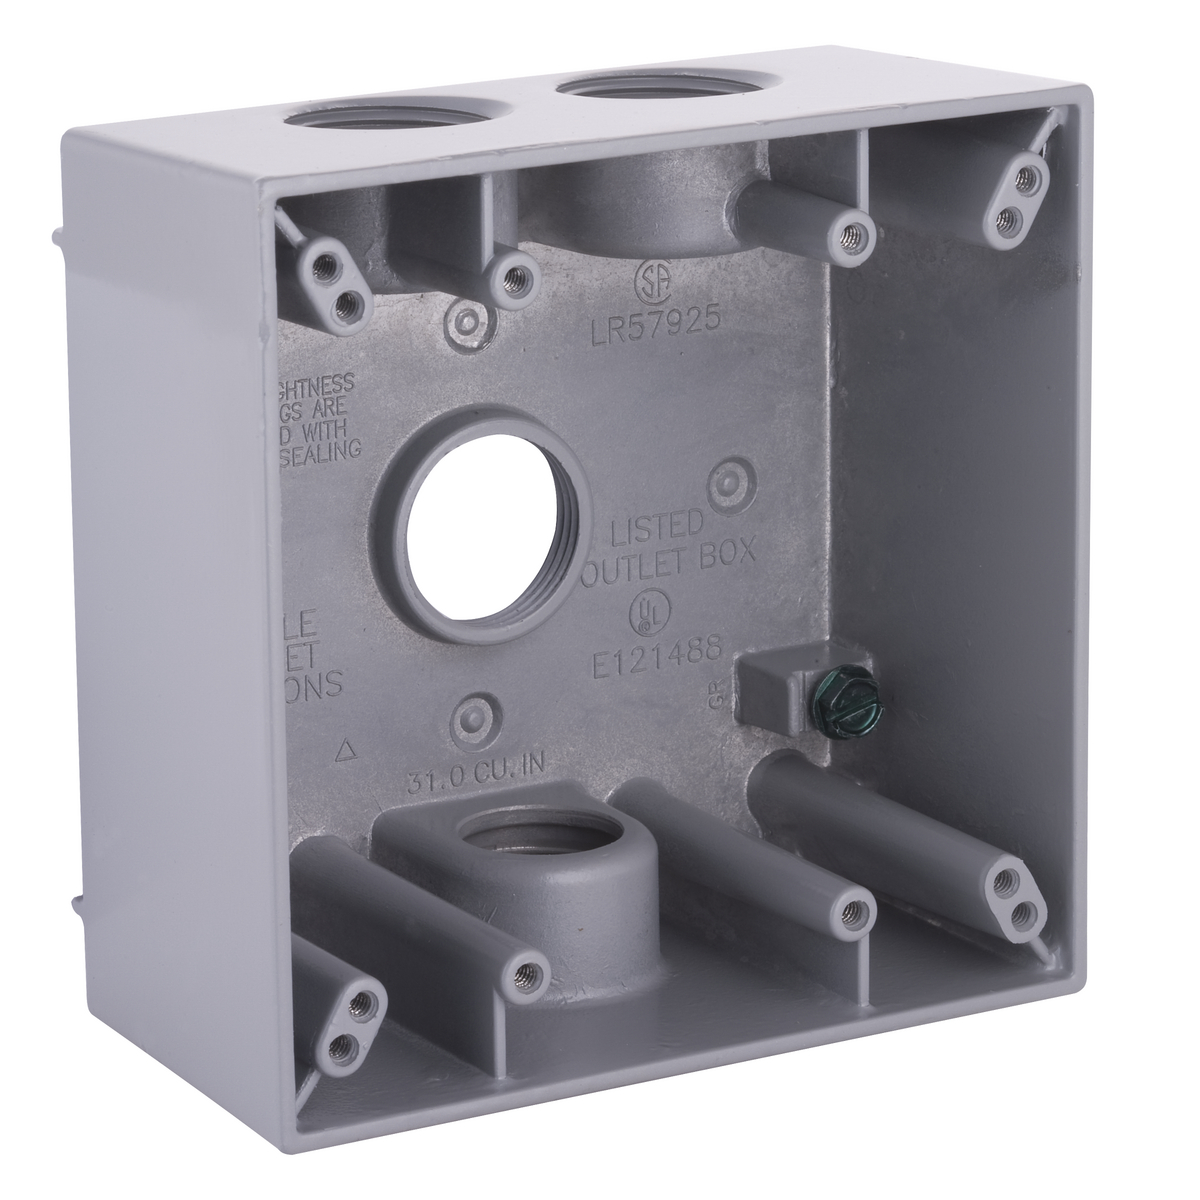 2G WP BOX (4) 3/4 IN. OUTLETS - GRAY